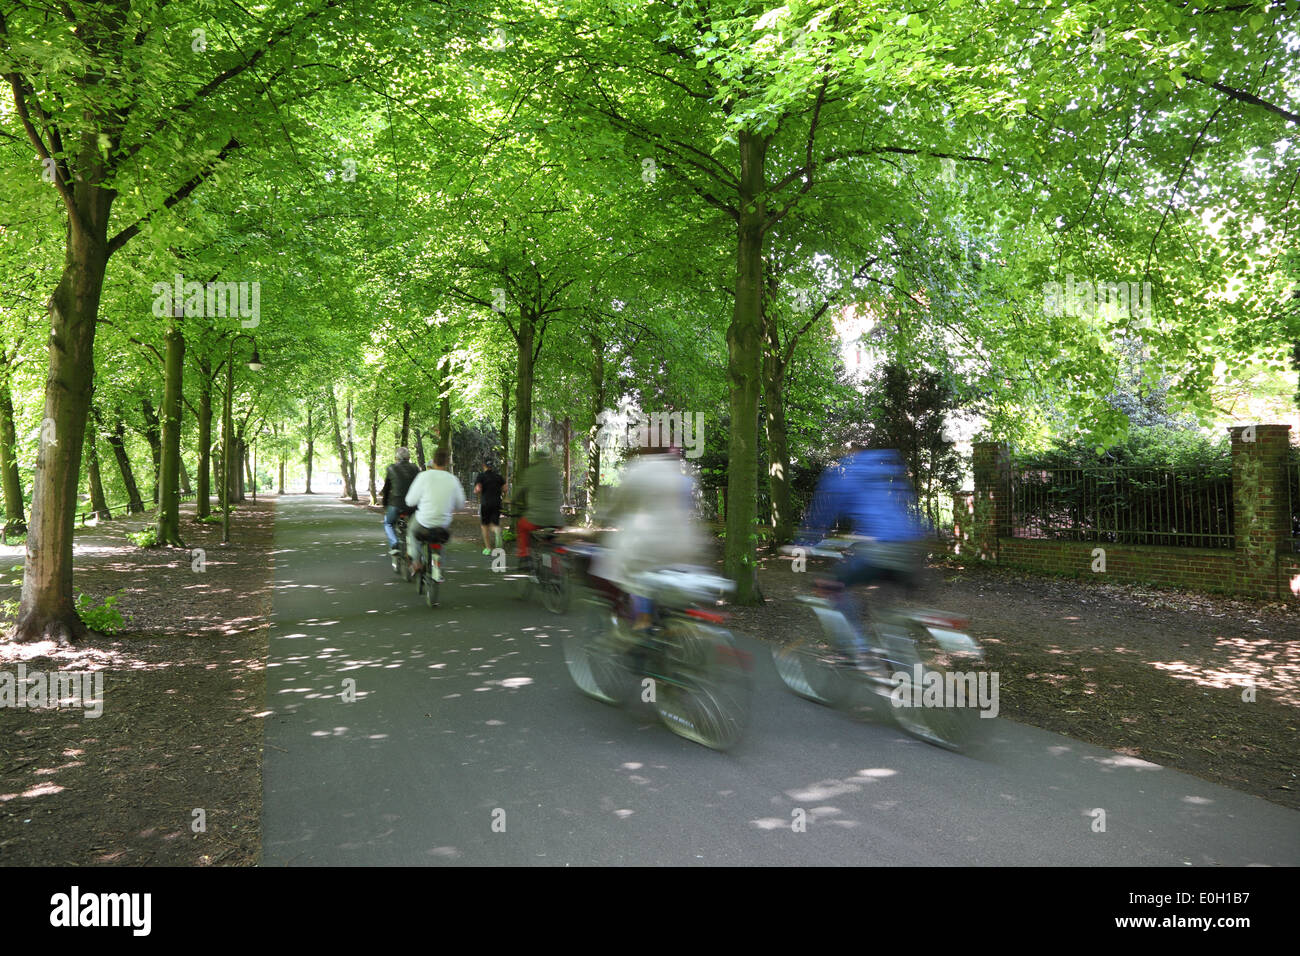 Bicycle riders in a city park - Stock Image